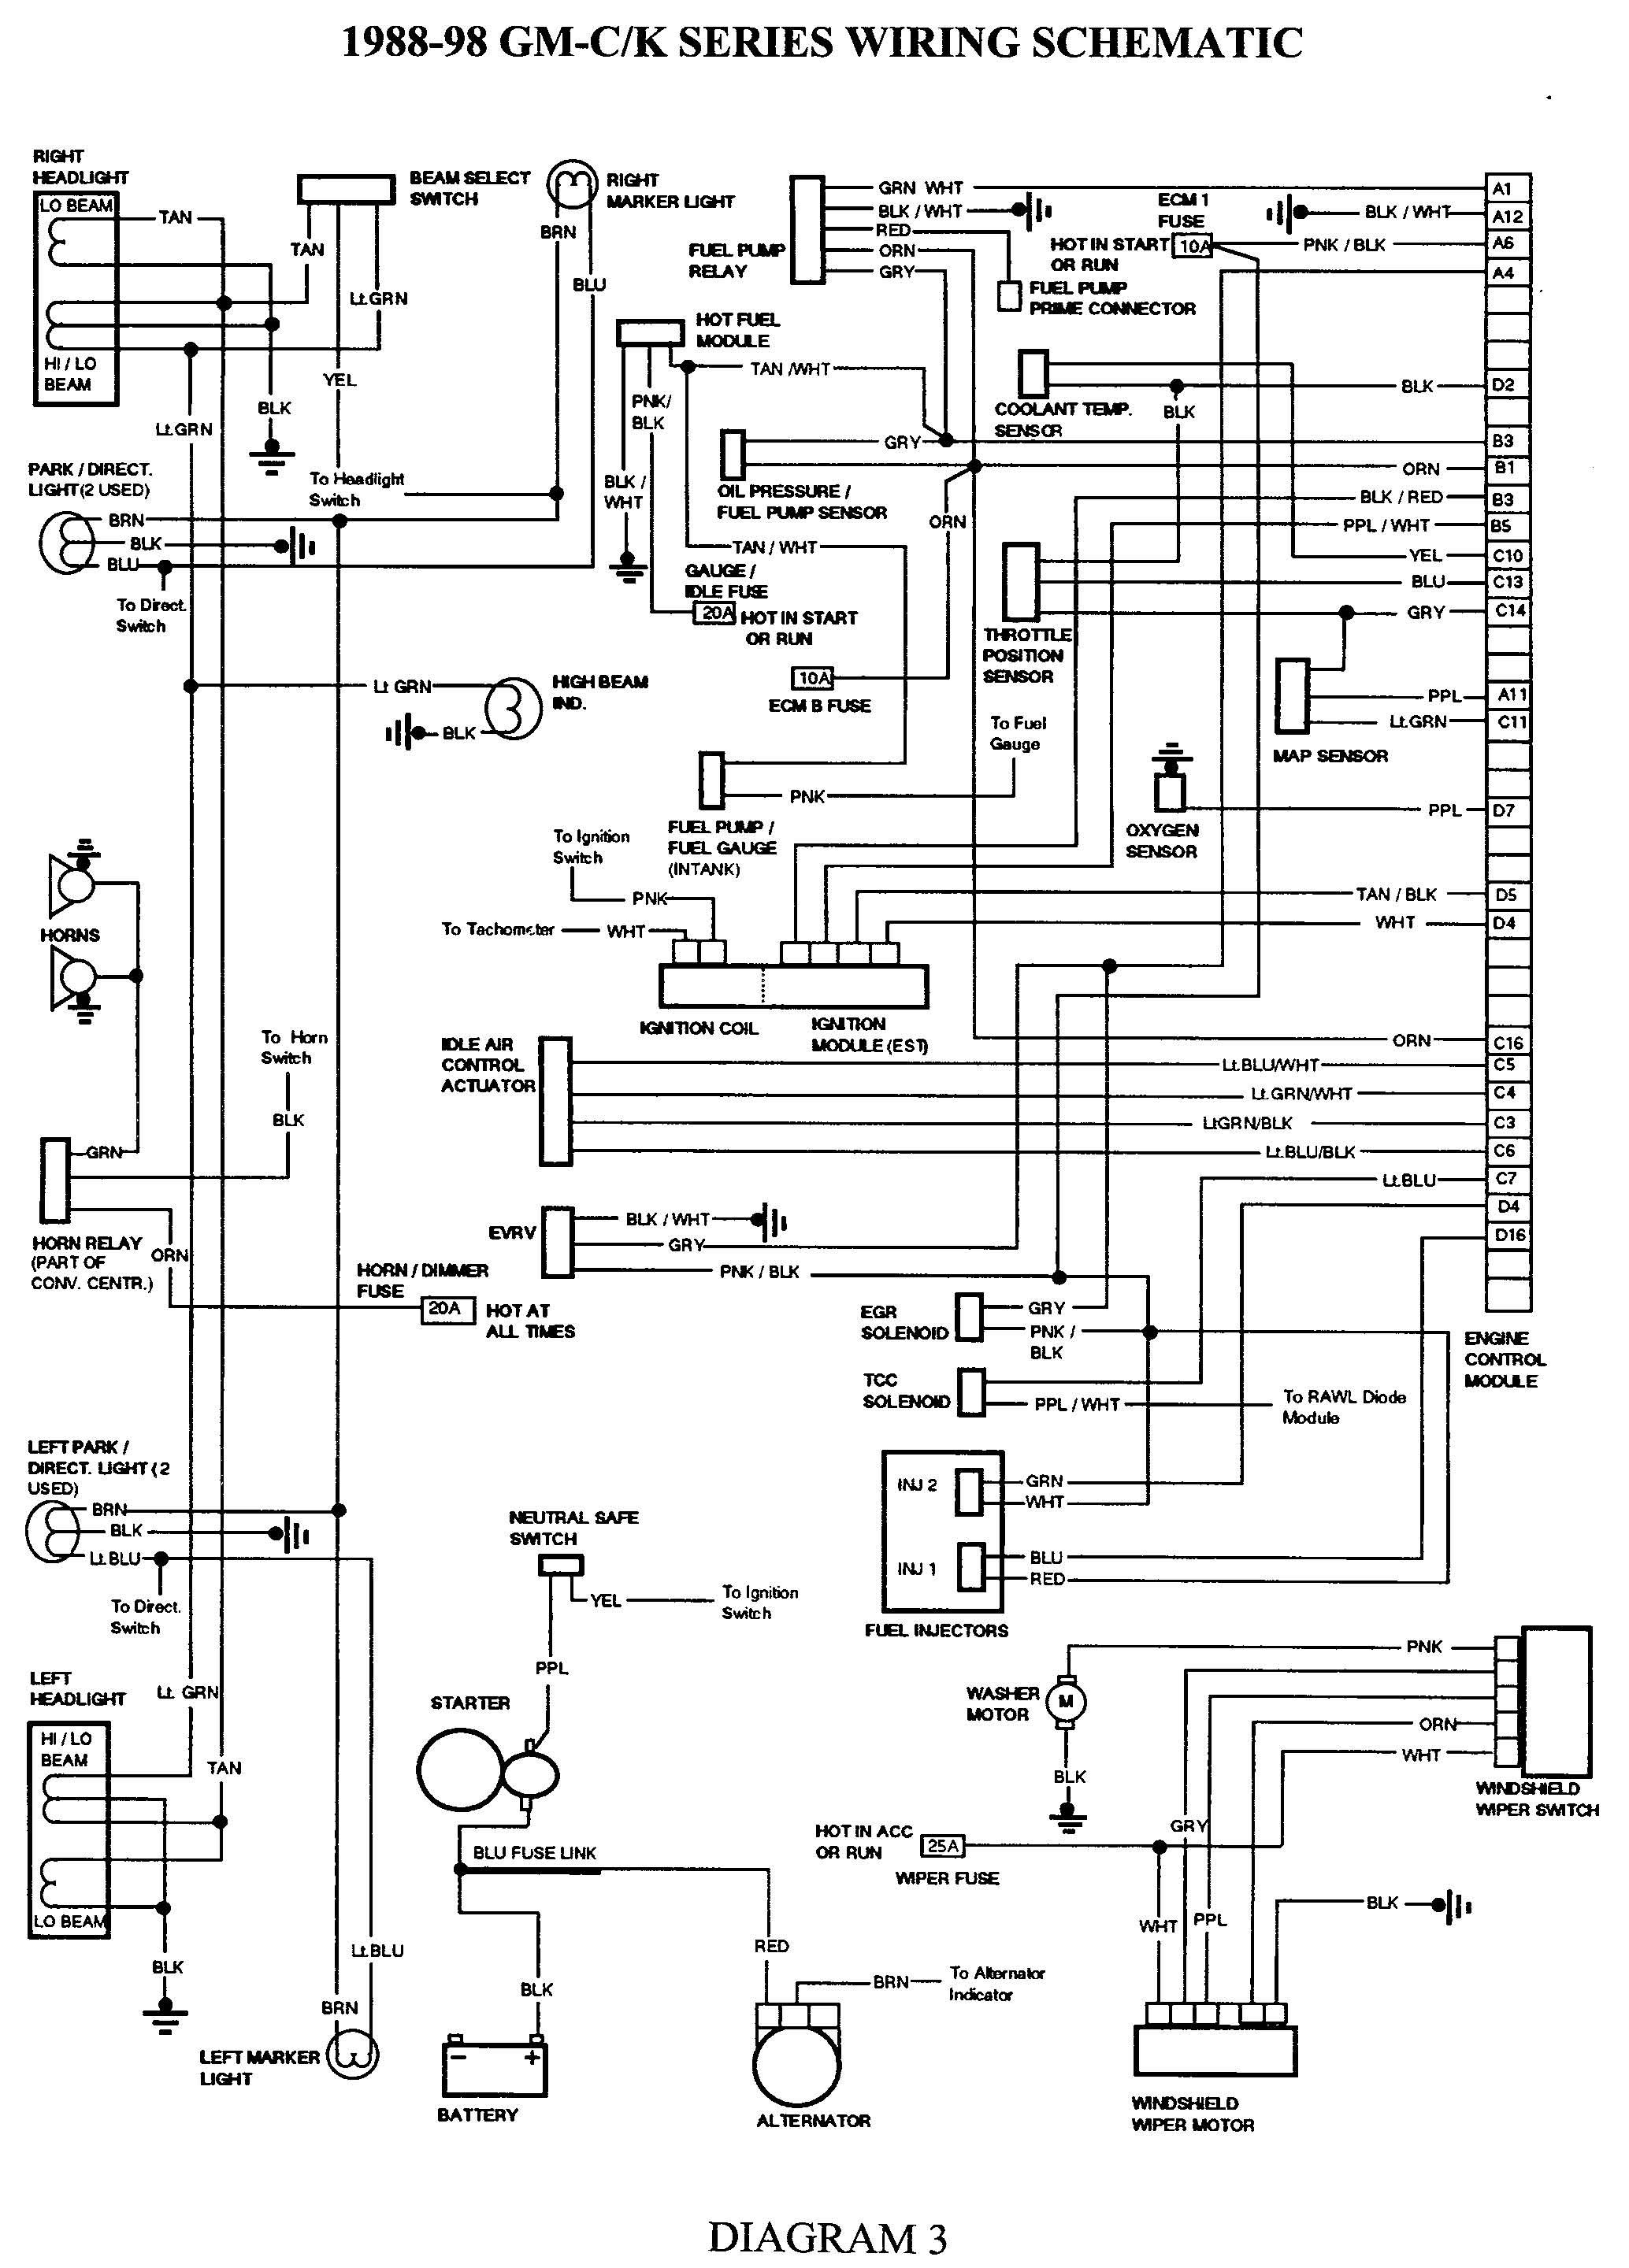 b2f2e5dbdc07dada83ef514f6d4ce3d4 gmc yukon wiring diagram battery explore wiring diagram on the net \u2022